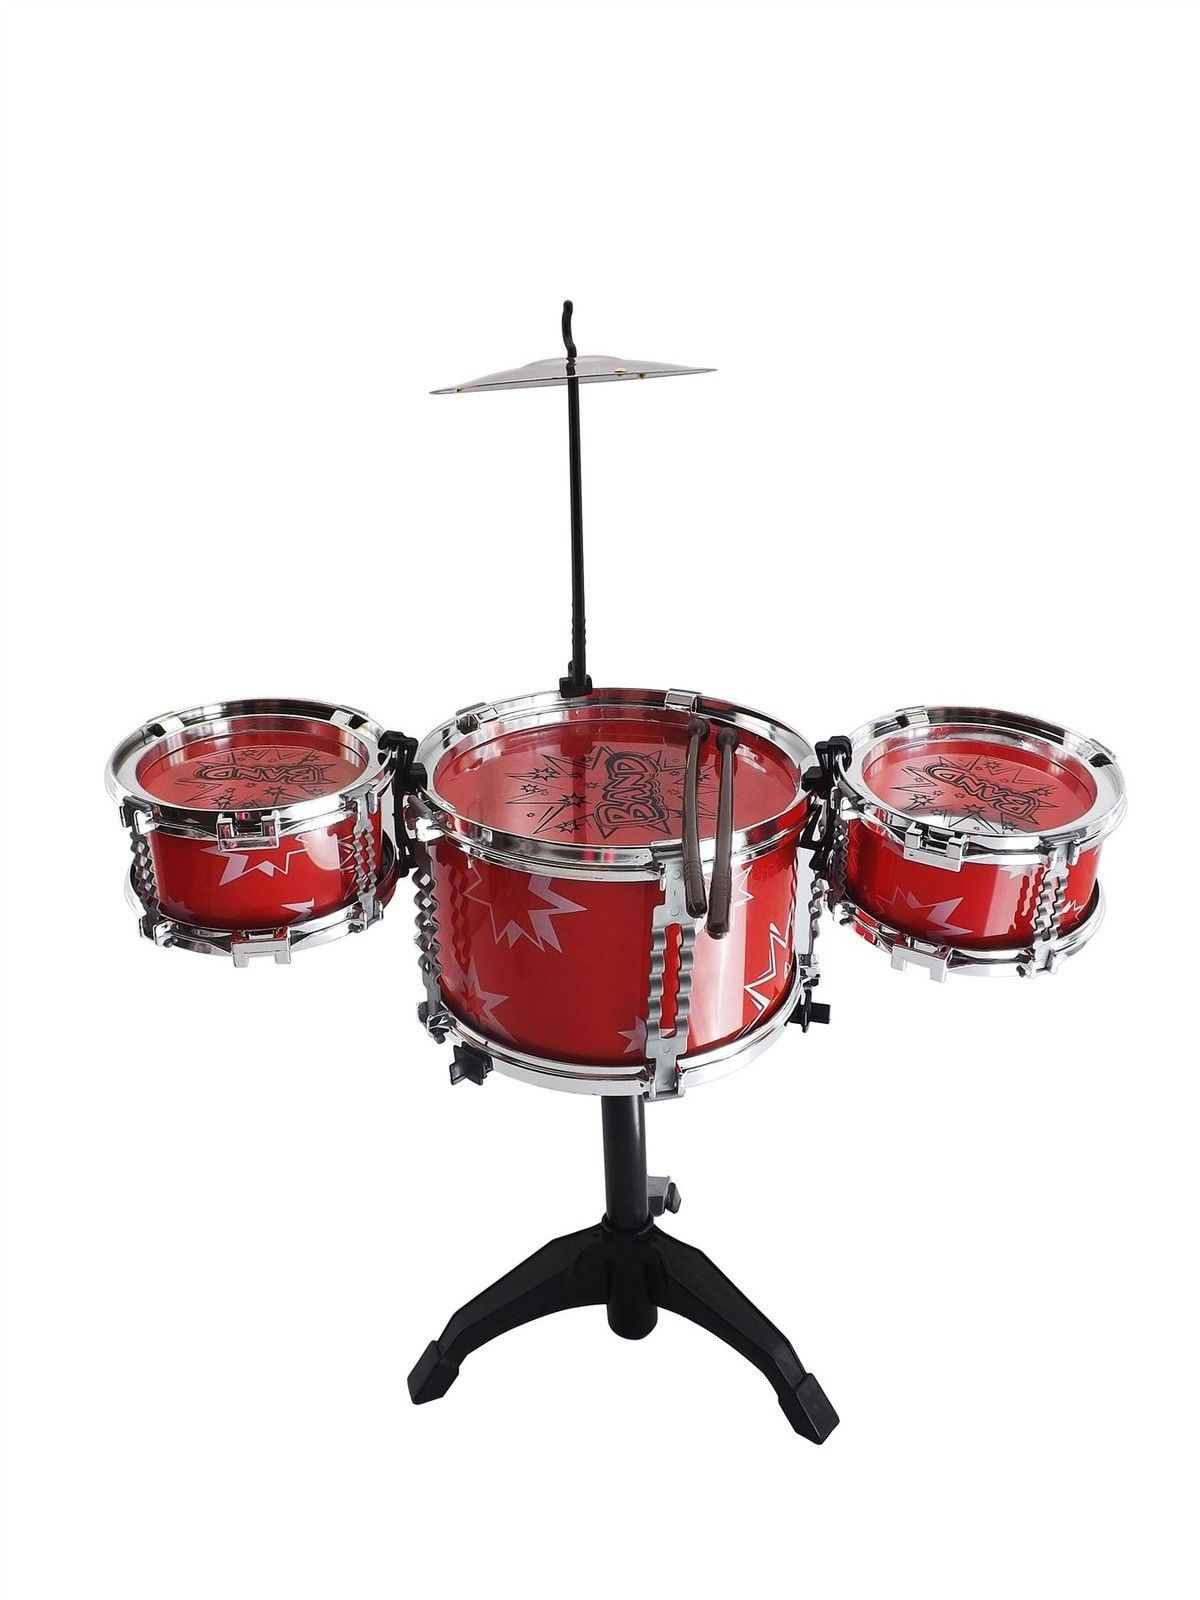 Big Band Enfants Bleu Rouge Tambour Percussion Musical Sound Playset Toy